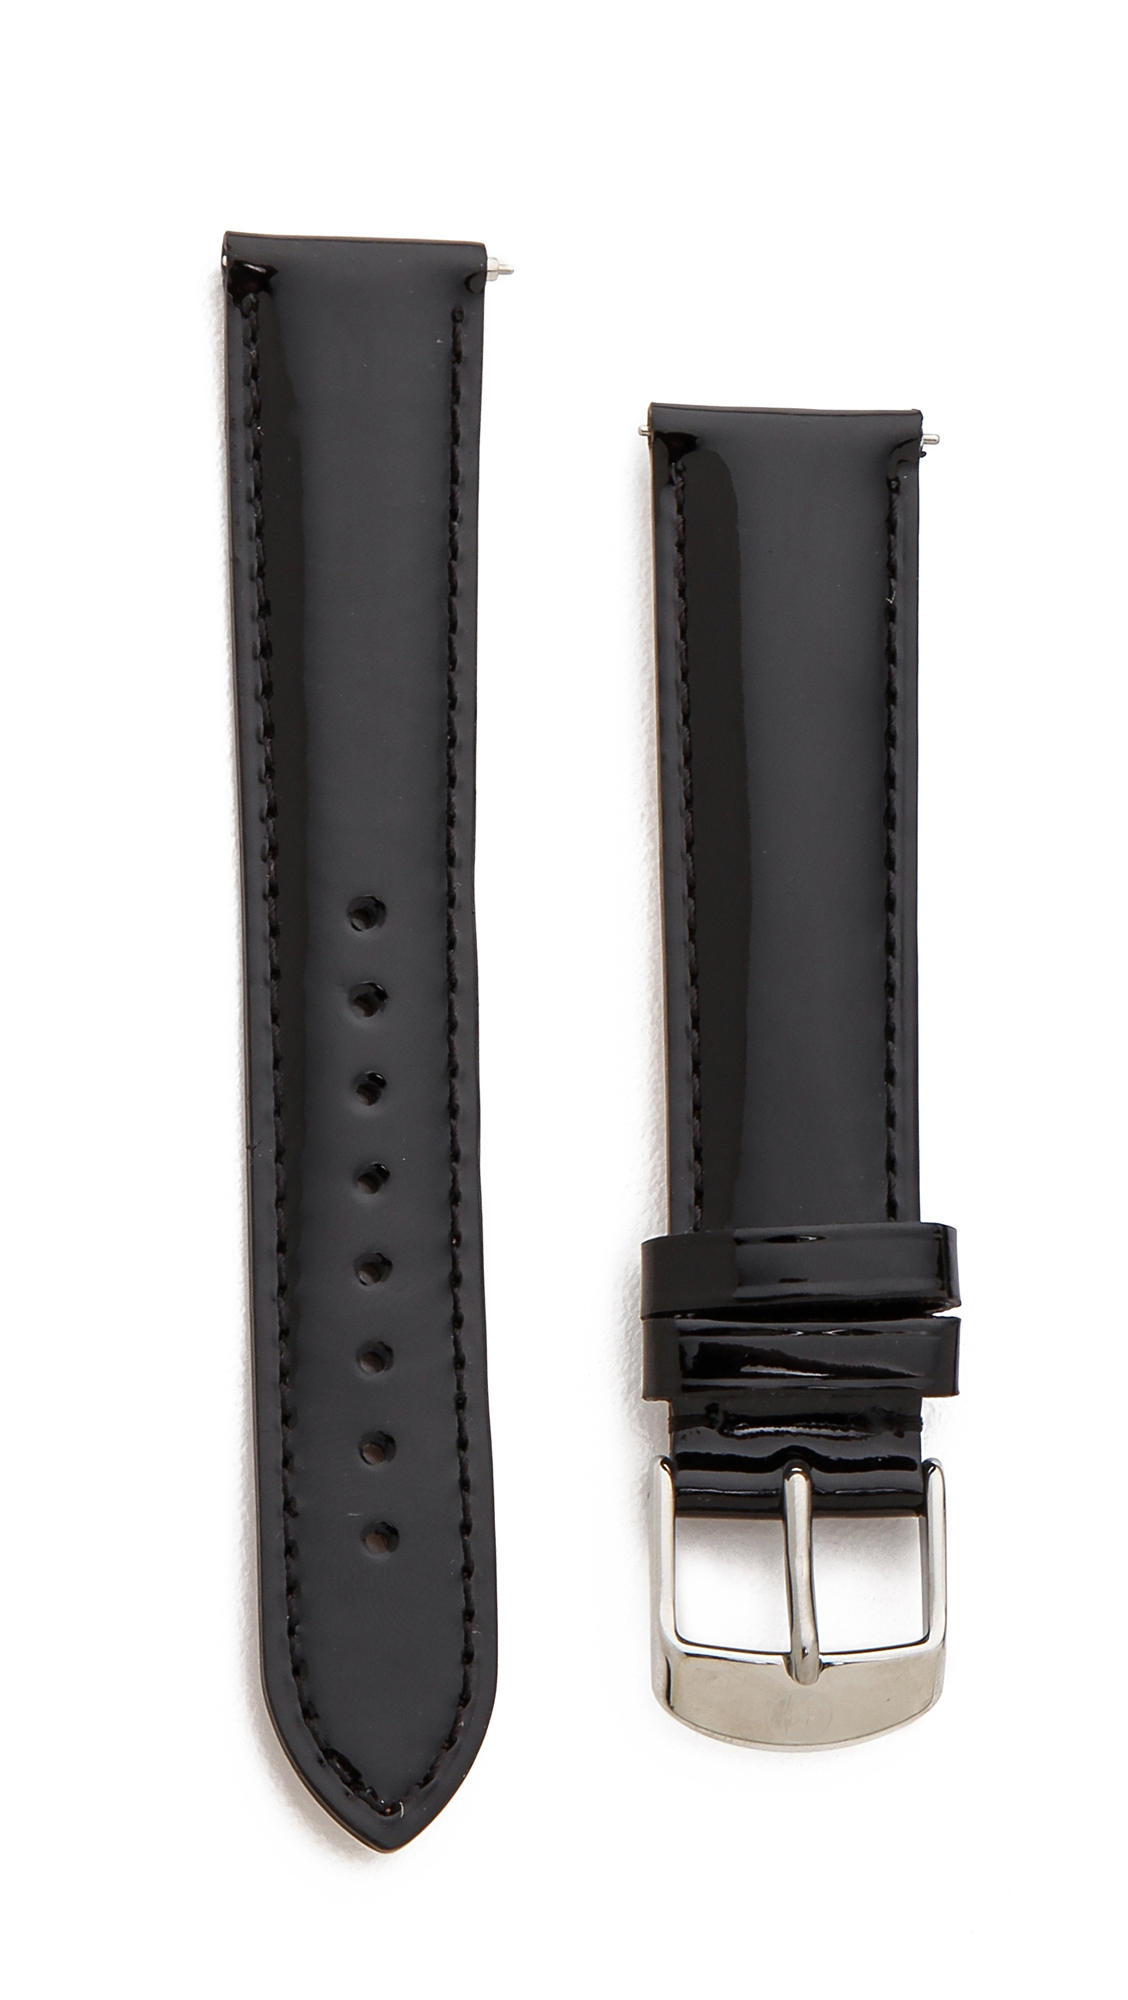 b05182d16 MICHELE 18mm Patent Leather Watch Strap on PopScreen